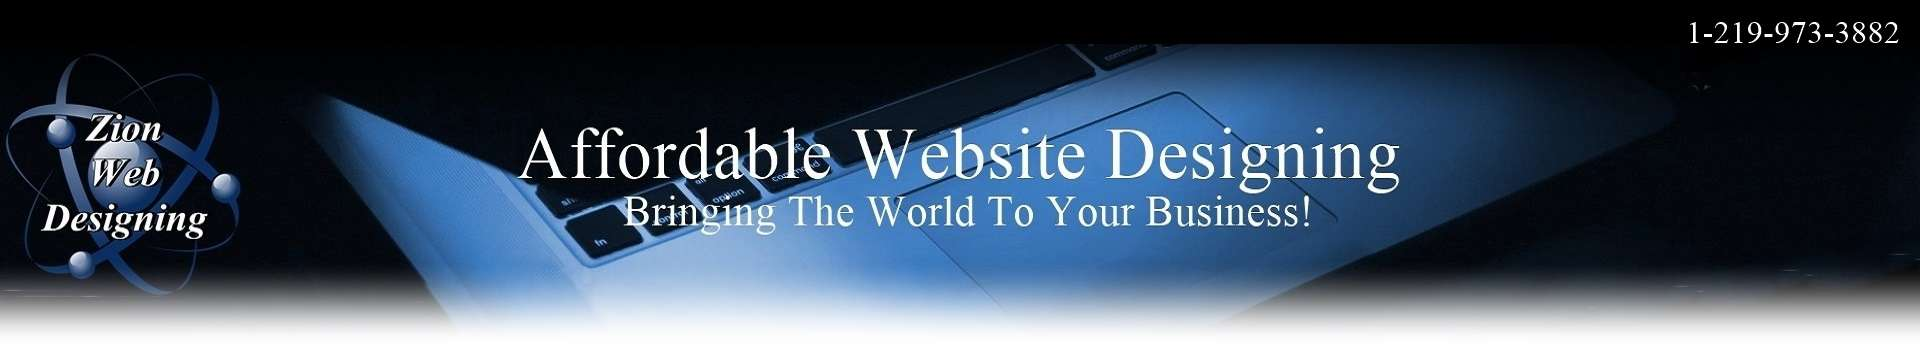 affordable_website_design_wix.com